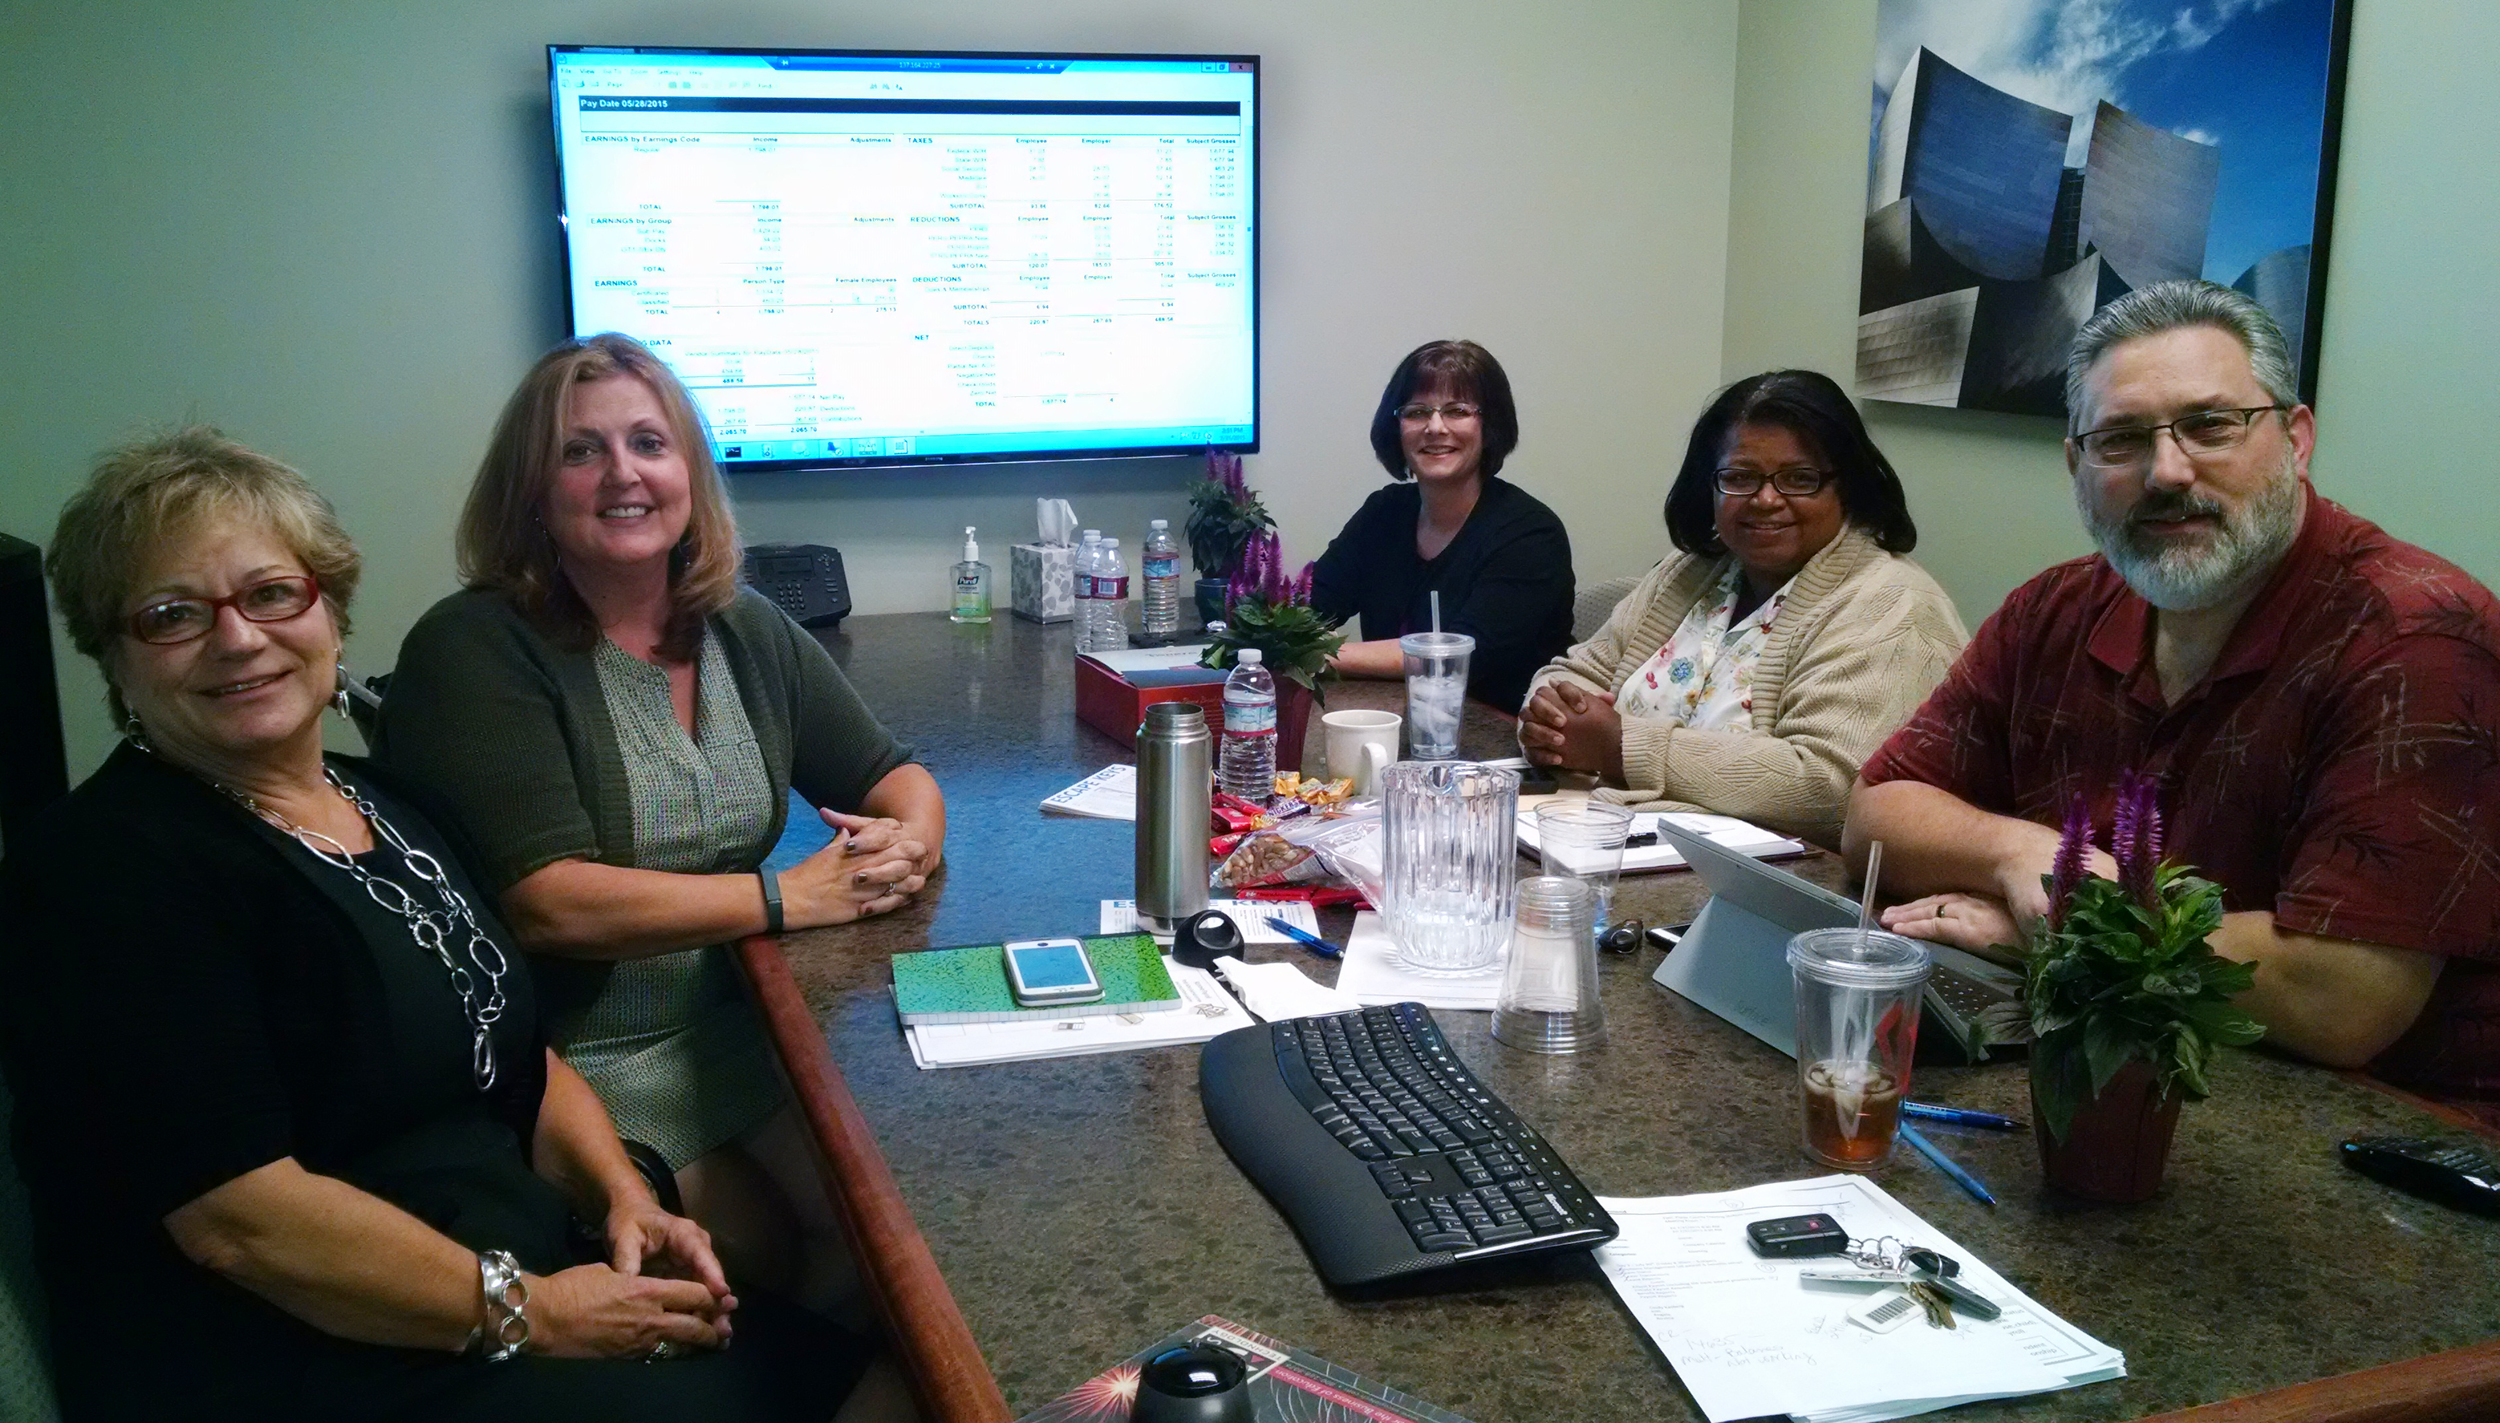 From left, clockwise: Cindy Kasberg, Auburn Union School District, Account Technician, Terri Hammond, Escape System Trainer, Angela DeGraaf, Placer COE, IT Support Specialist III, Roveta Waters, Placer COE IT Support Specialist III, and Joel Toste, Placer COE Senior Director Integrated Fiscal Services